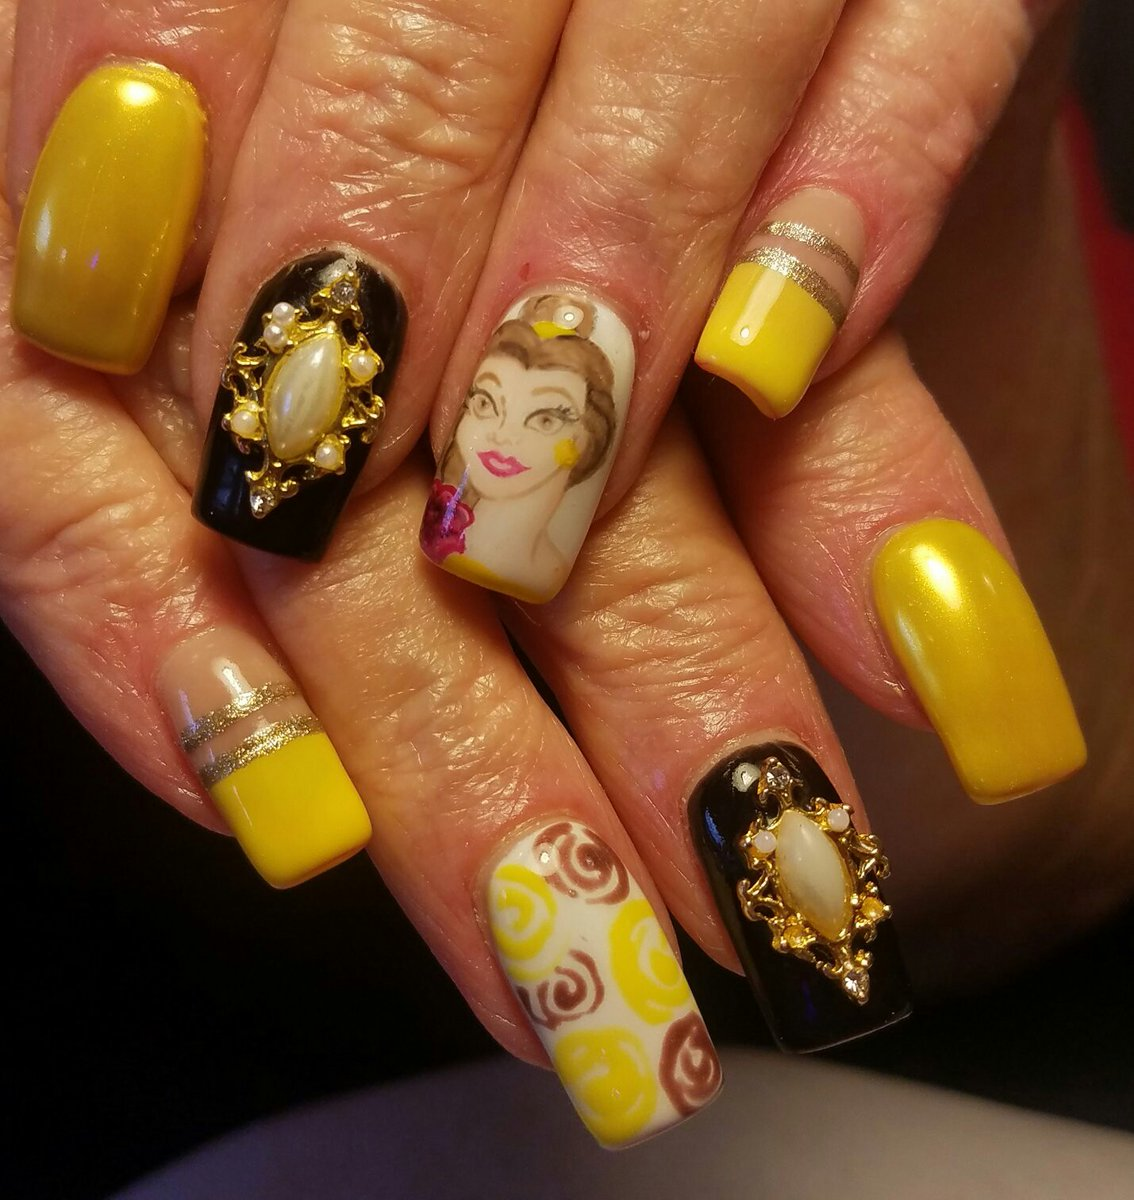 Beautiful Nail Art Inspired by Beauty and the Beast